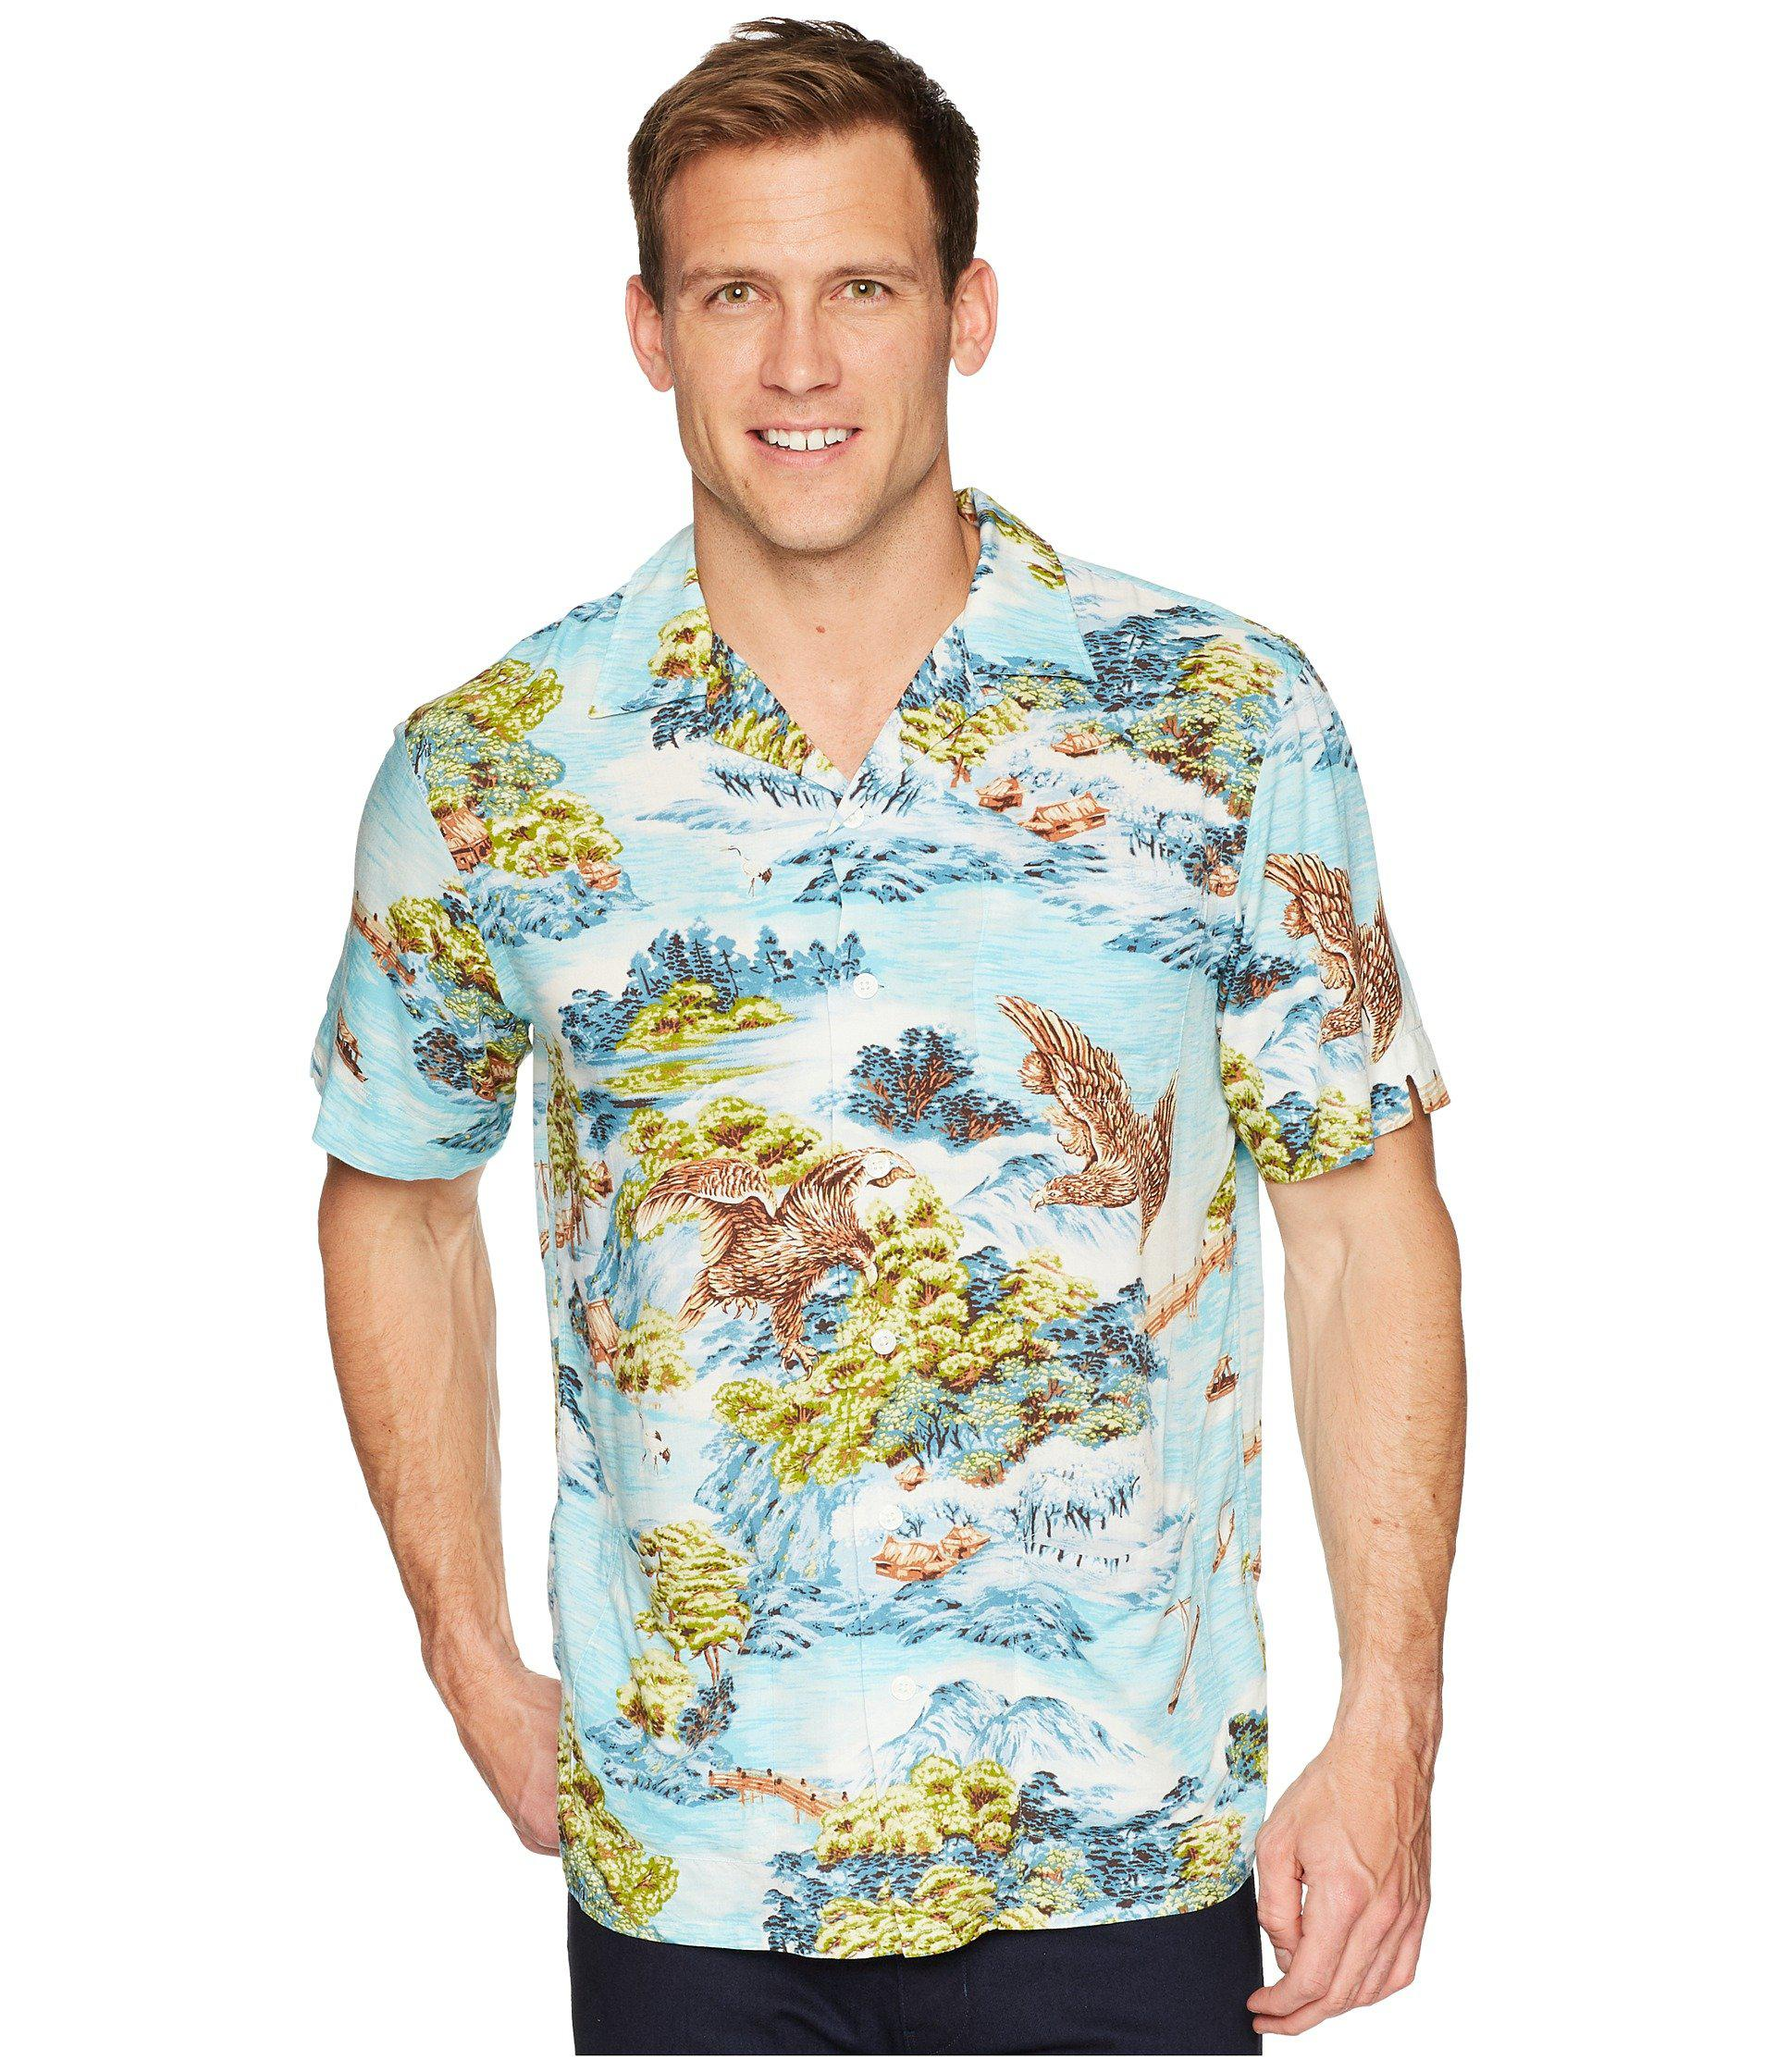 8464b78868453 Lyst - Polo Ralph Lauren Classic Fit Printed Camp Shirt in Blue for ...